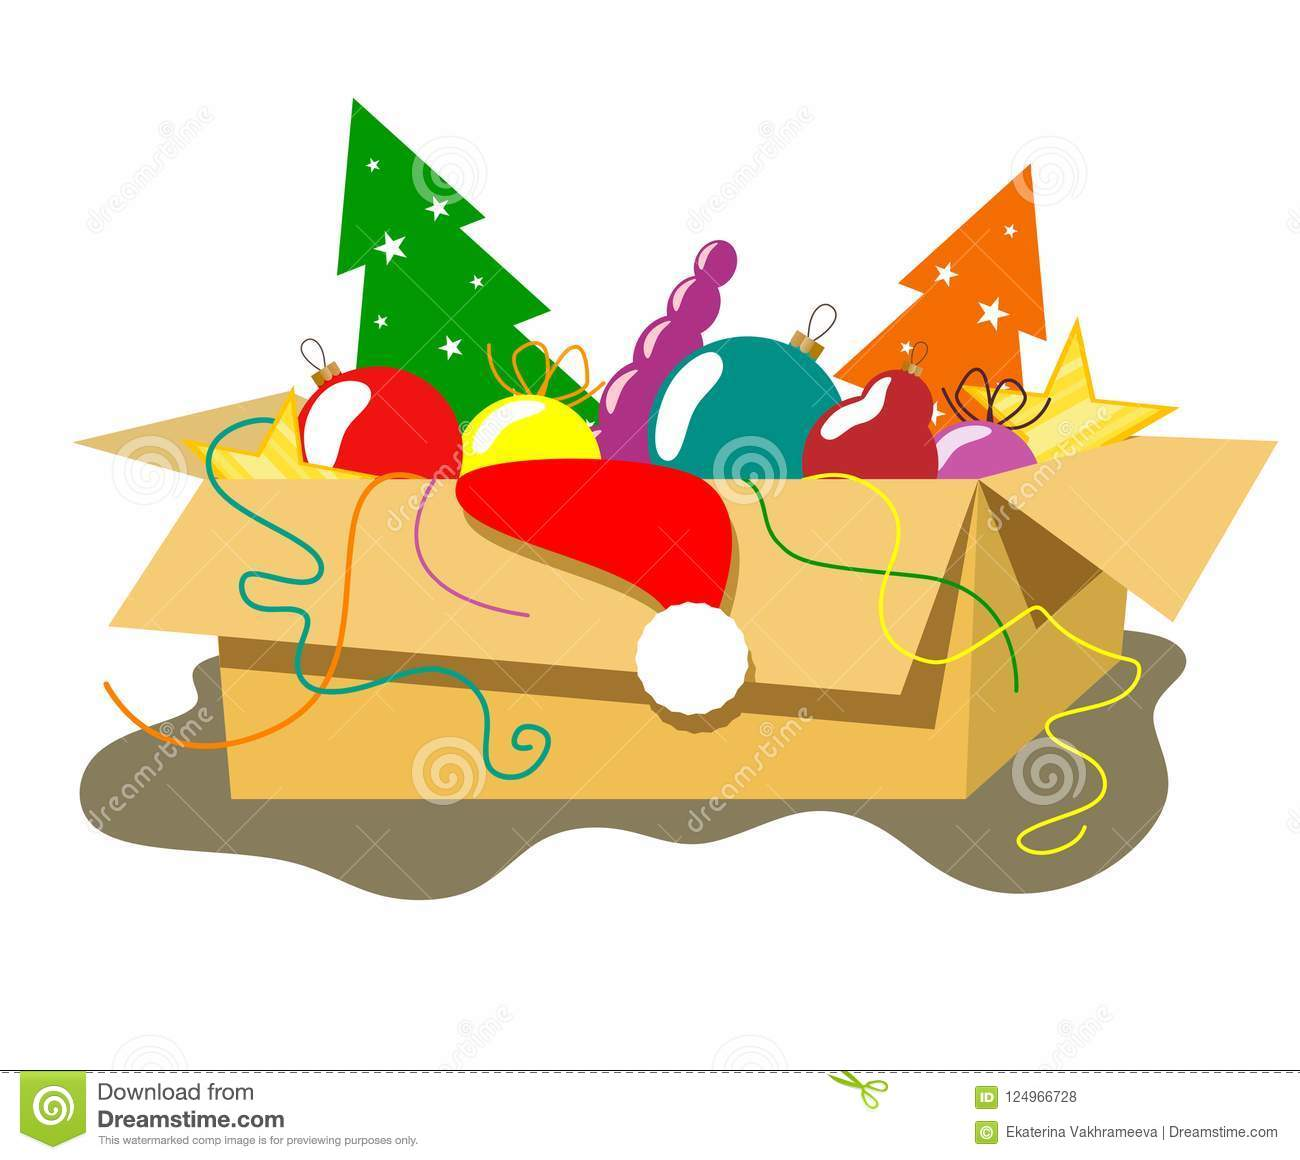 download cardboard box with christmas decorations and decor in the style of flat stock vector - Cardboard Box Christmas Decorations